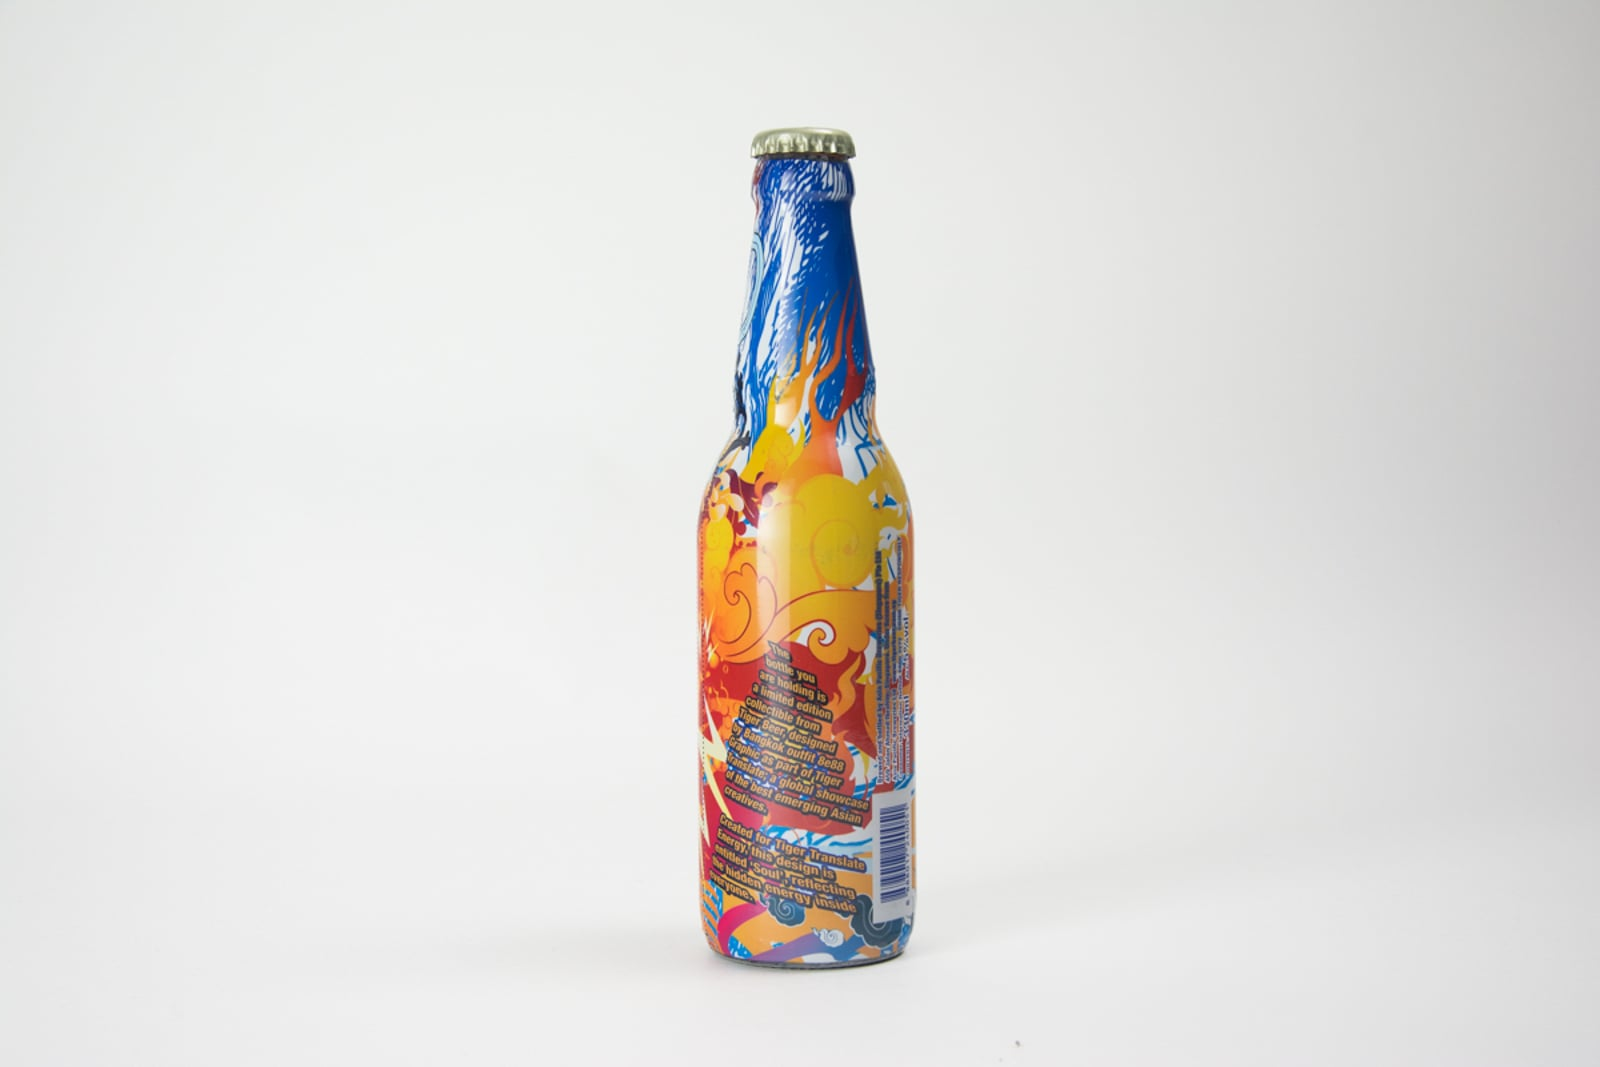 Tiger Beer Limited Edition Bottle Designed By Bangkok Outfit 8E88, 330ml